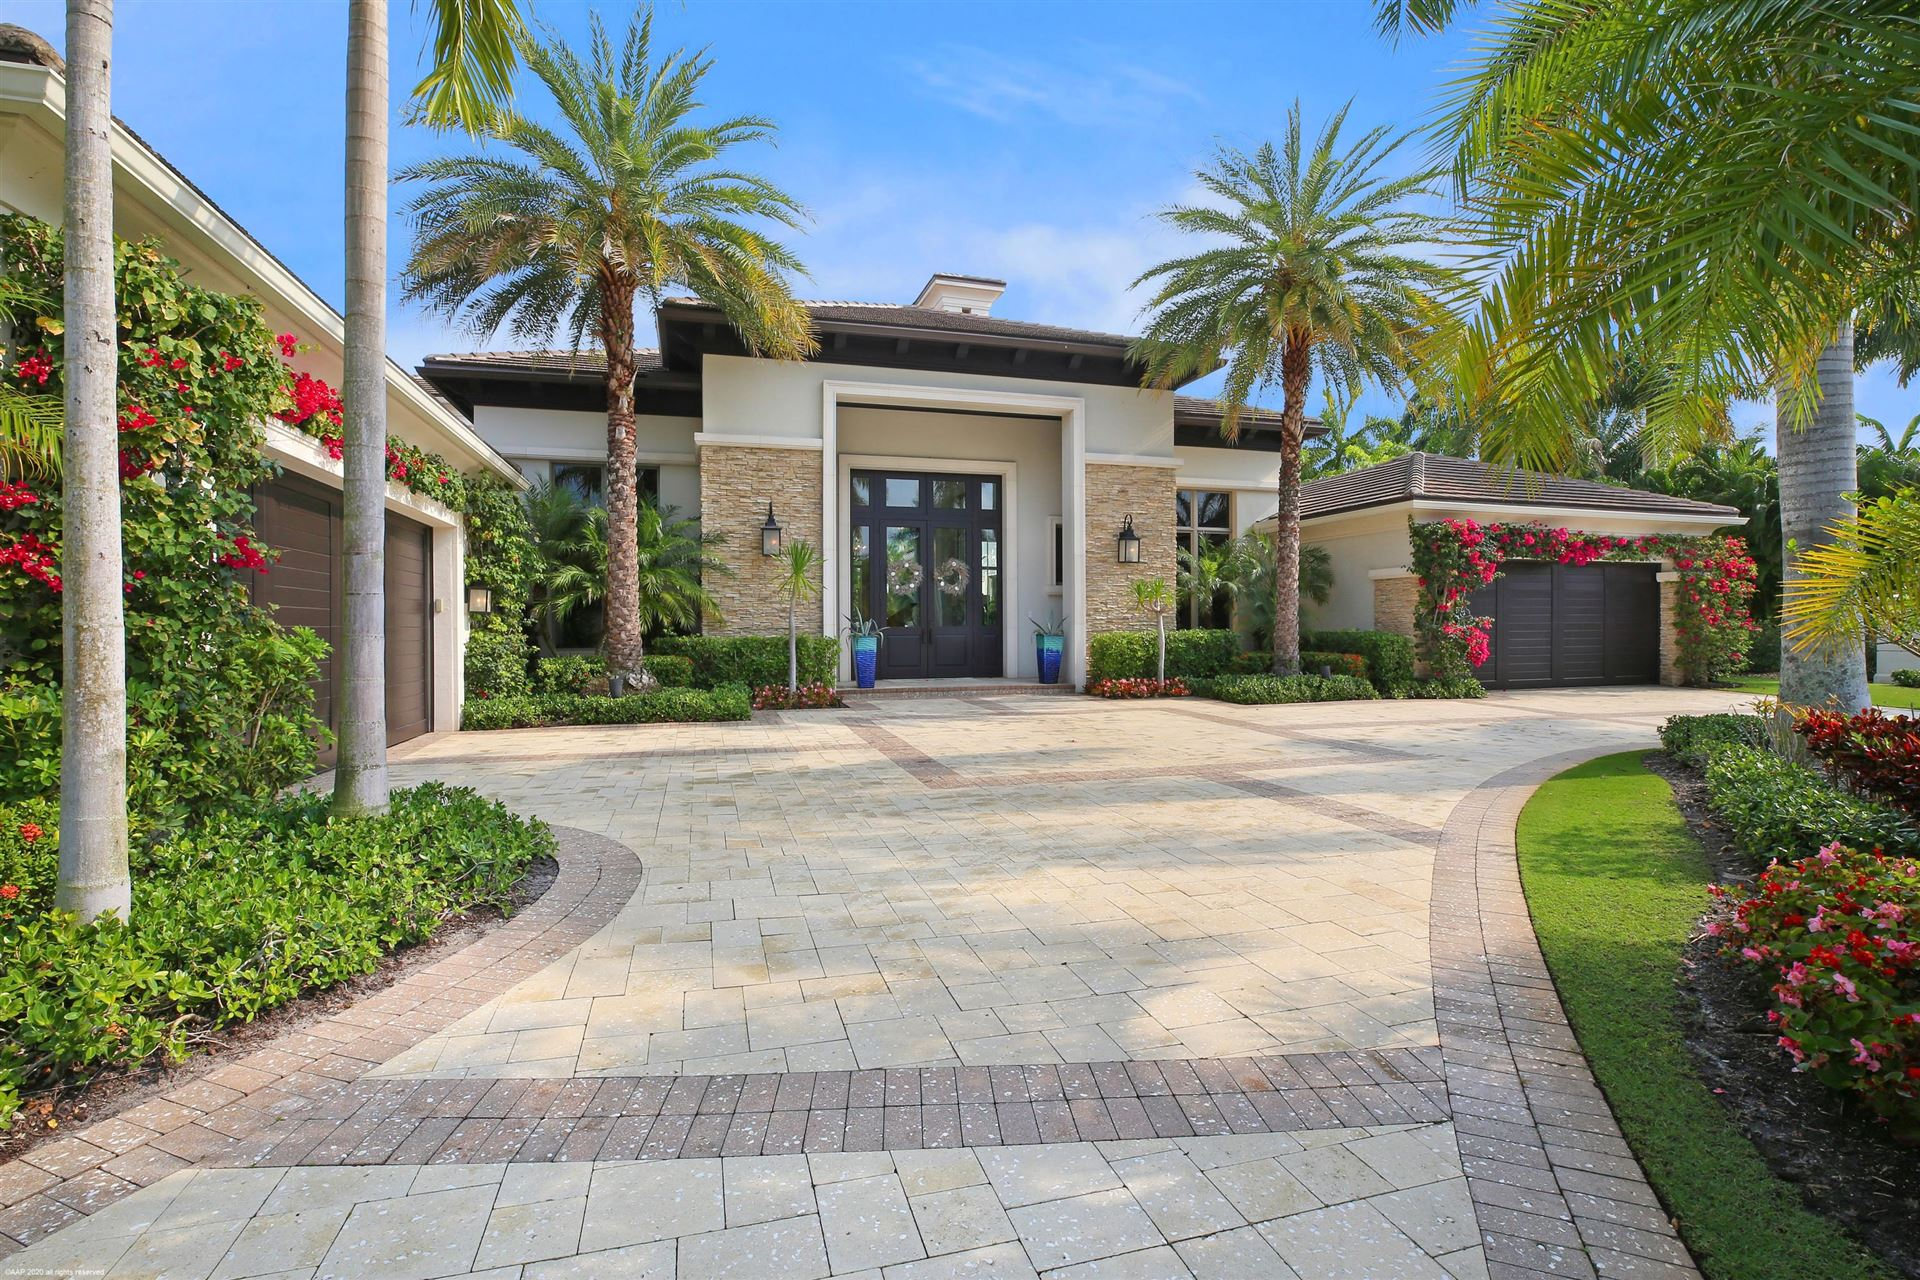 Photo of 11767 Calla Lilly Court, Palm Beach Gardens, FL 33418 (MLS # RX-10624504)